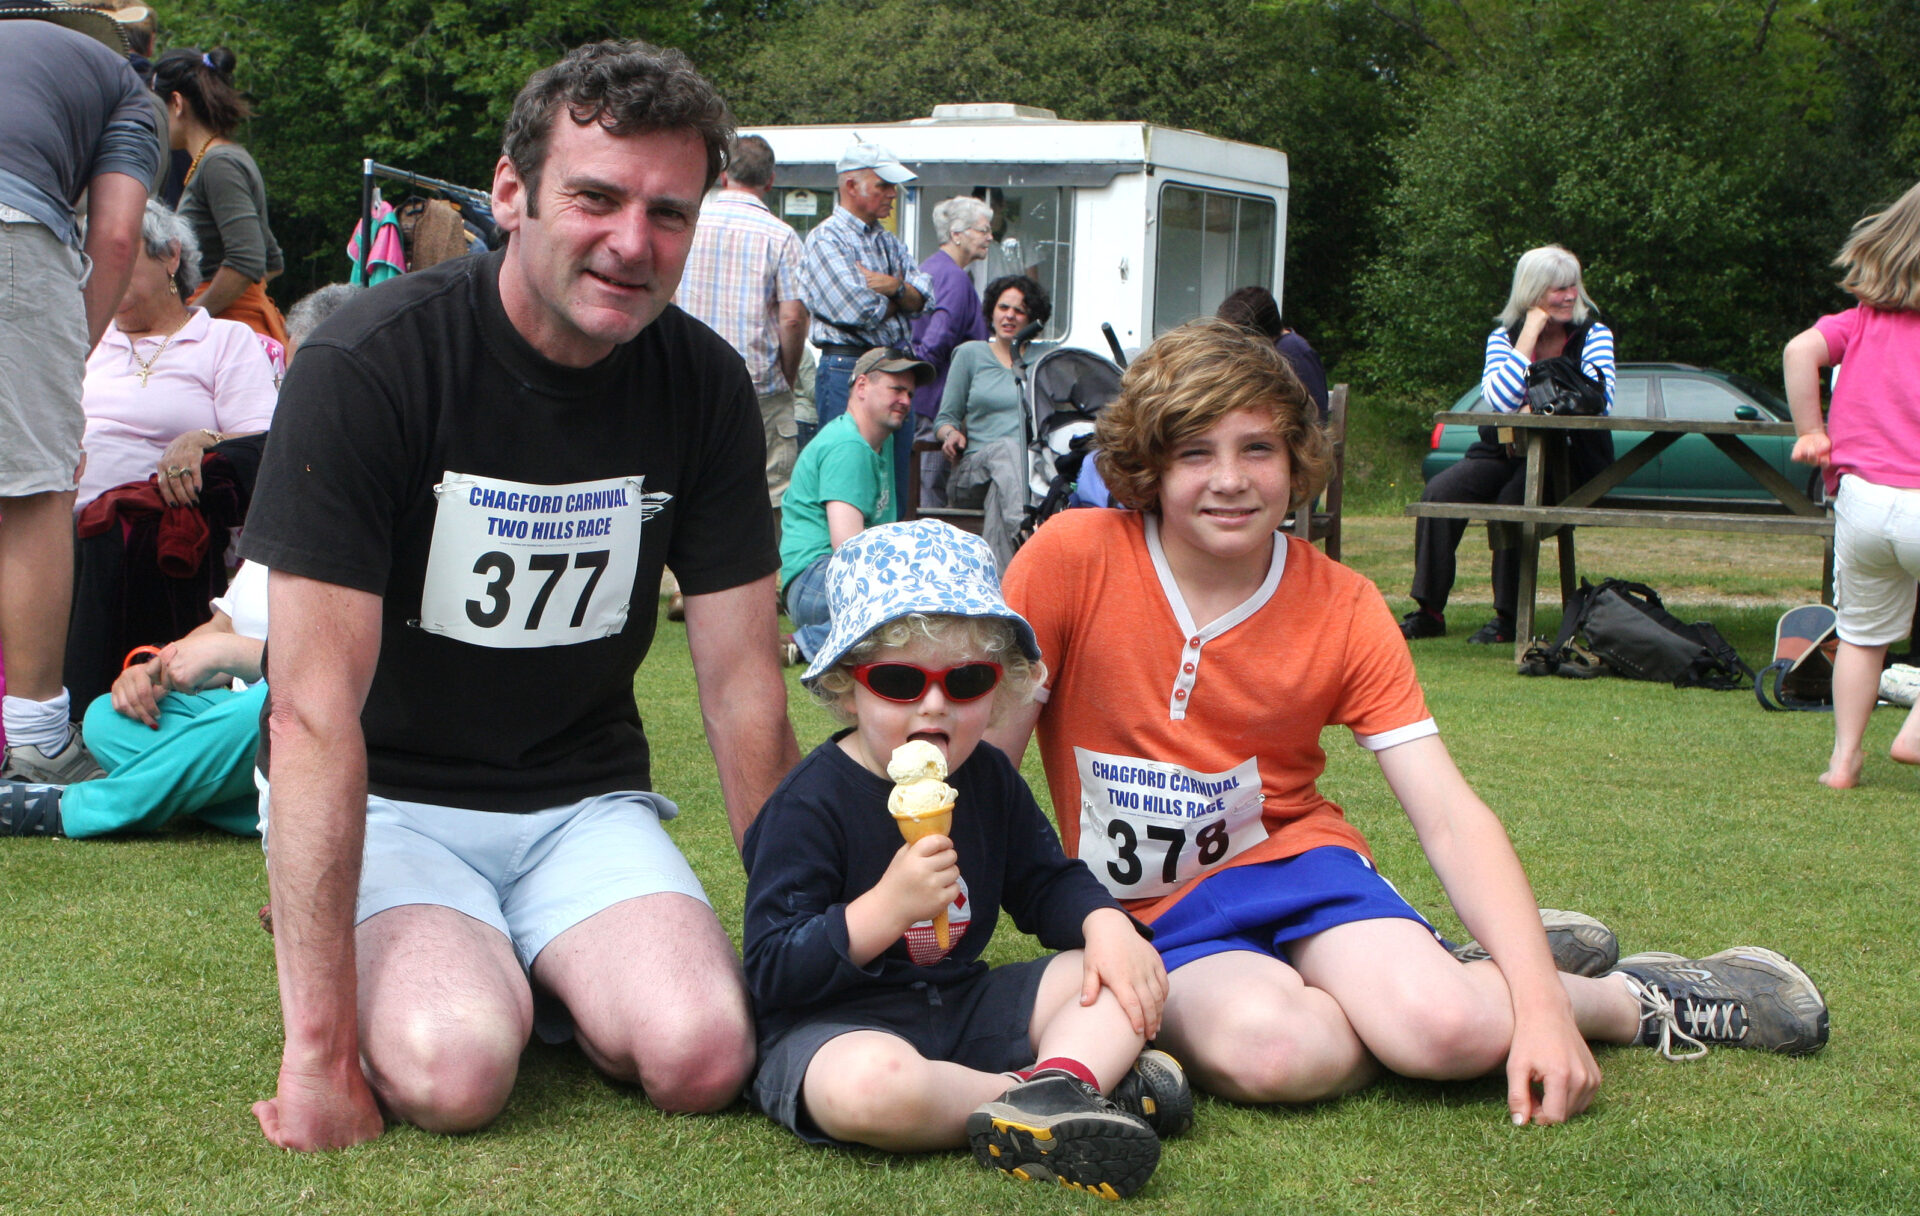 Two Hill Race, Chagford. These two lads will be teenagers by now.